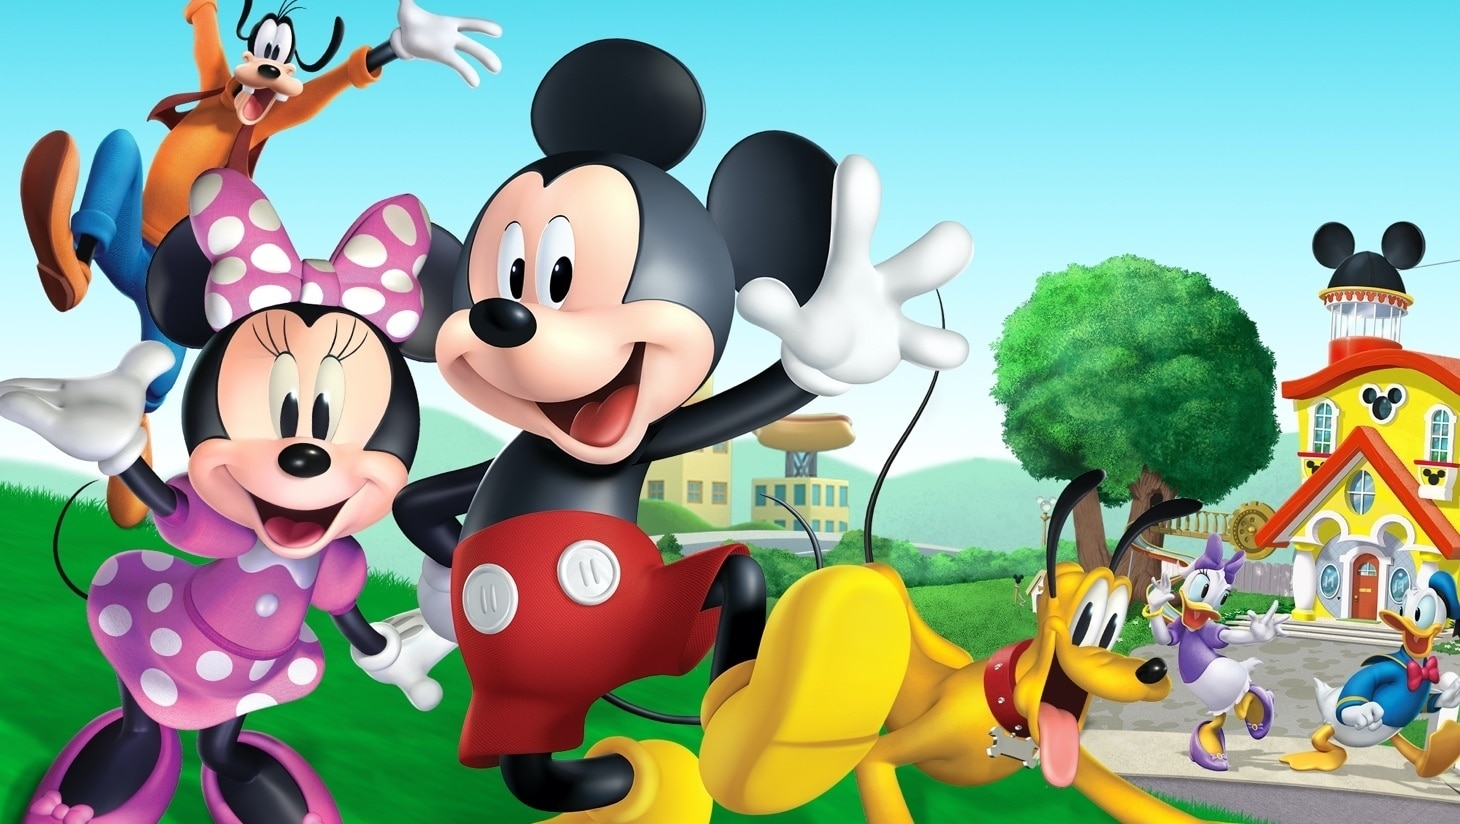 Mickey, Minnie, Pluto, Goofy, Donald and Daisy from Mickey Mouse's Mixed Up Adventures